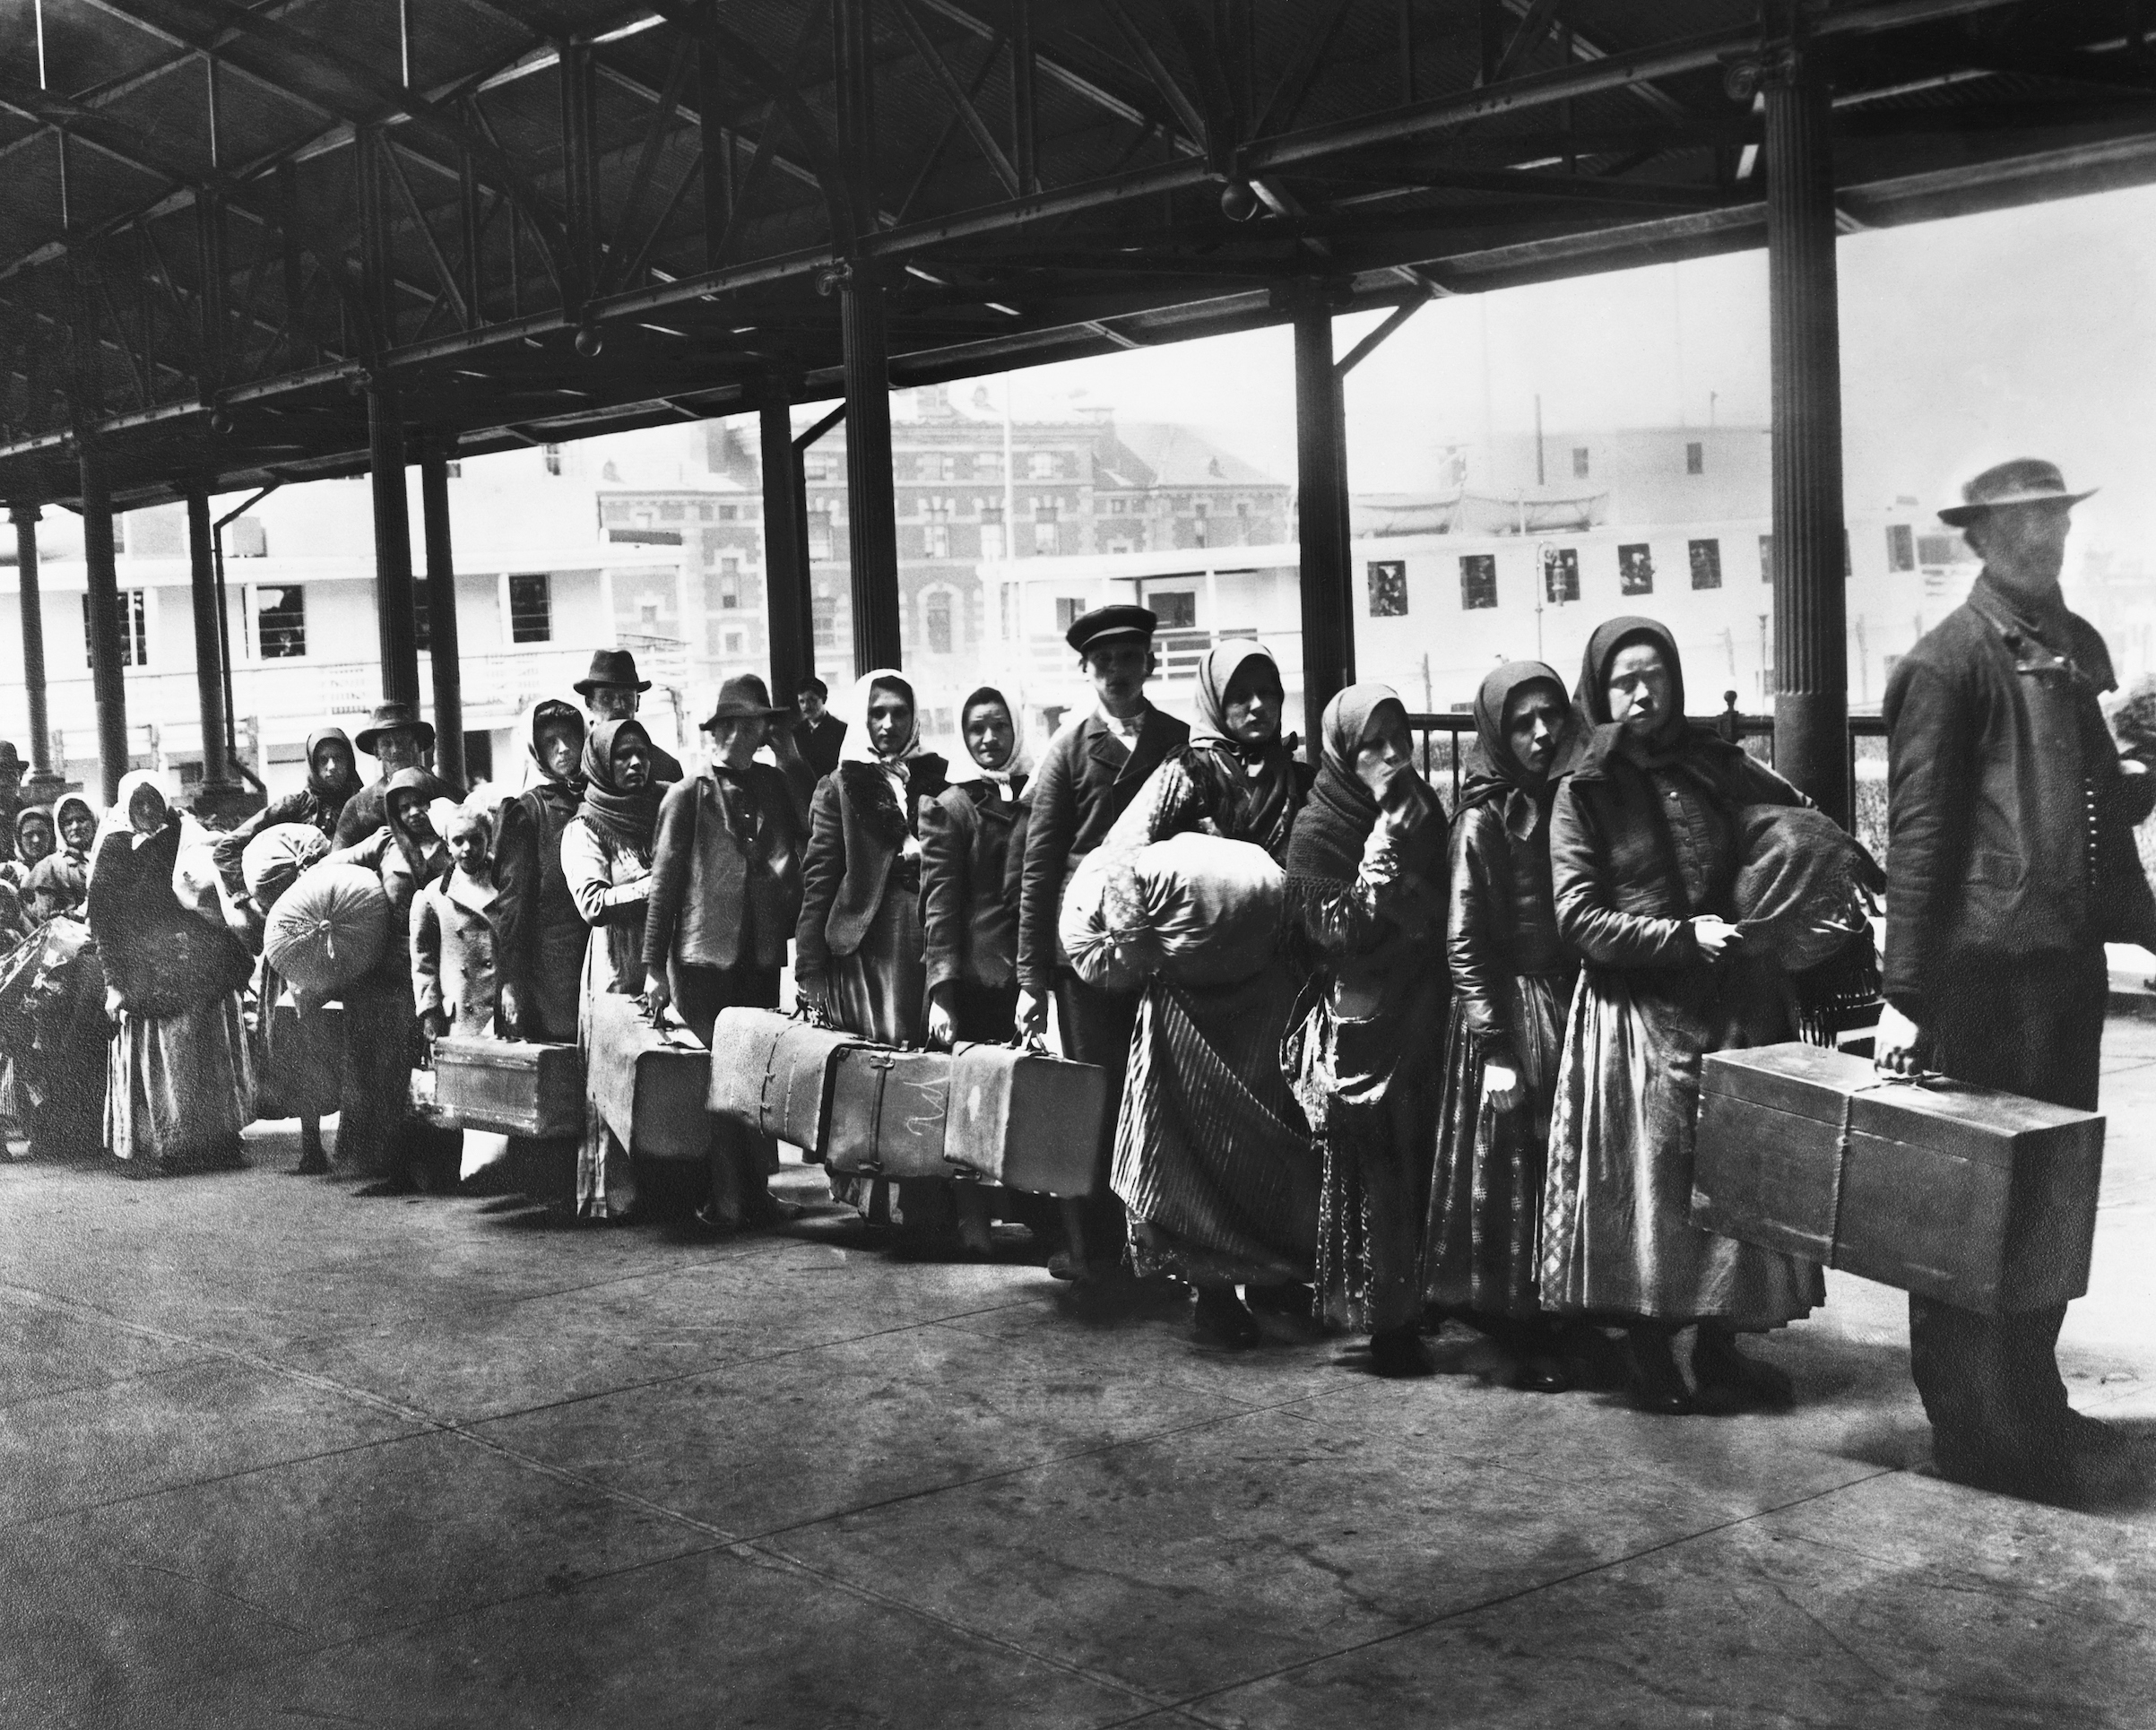 Immigrants on line leaving Ellis Island waiting for ferry to N.Y., ca 1900.